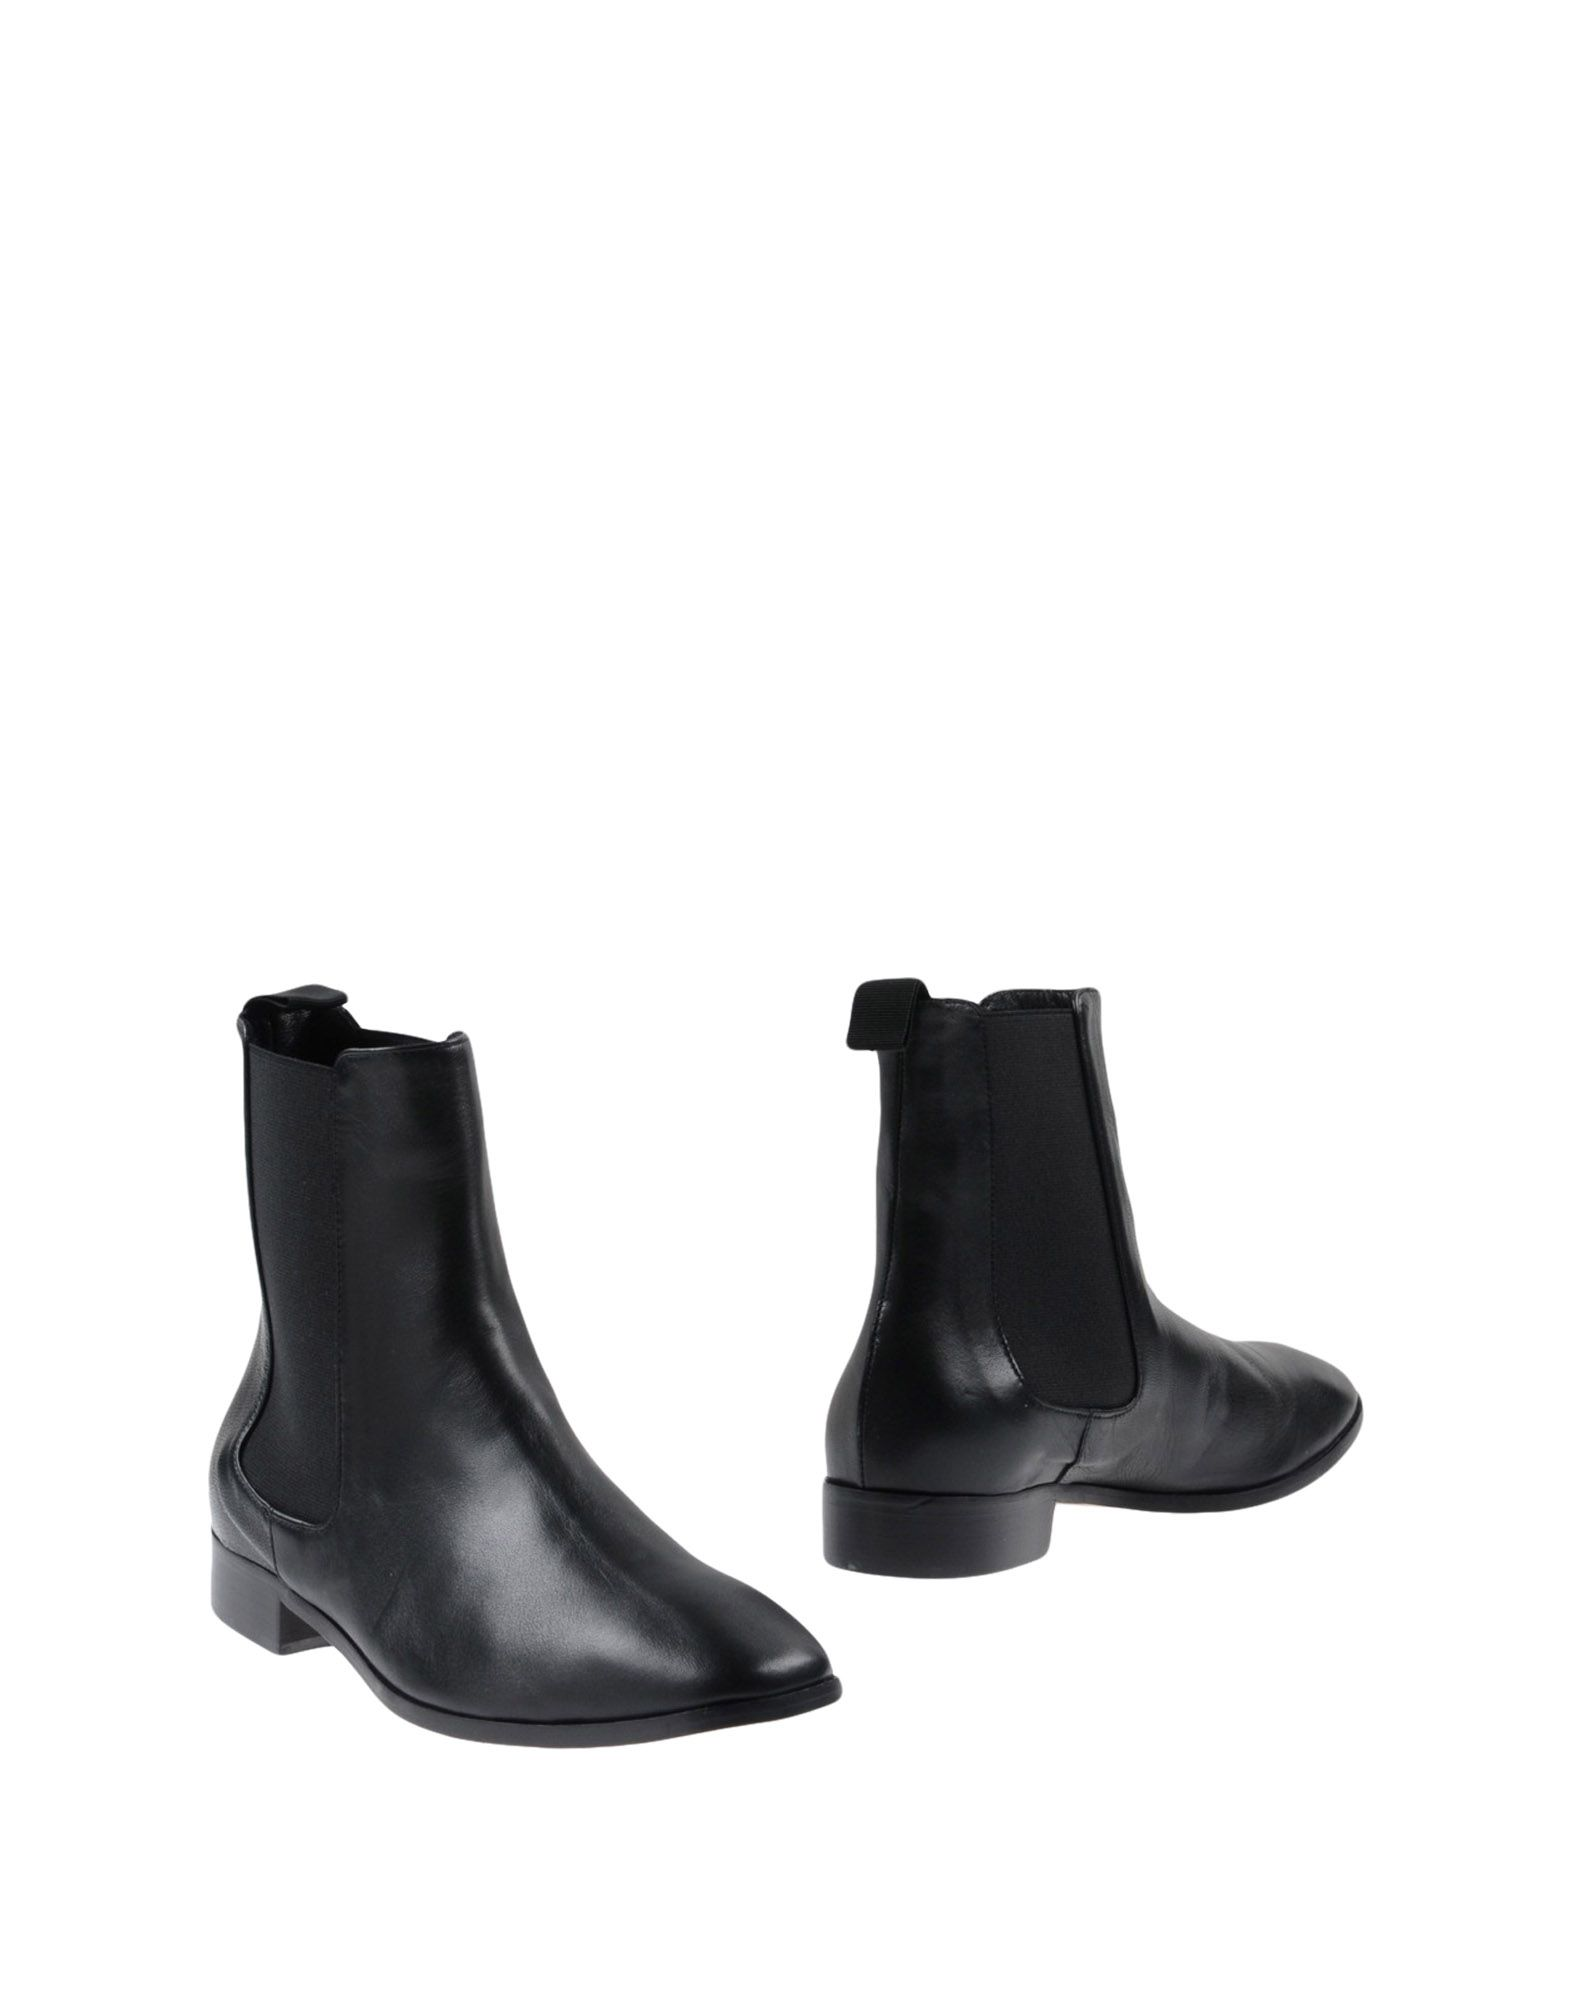 FOOTWEAR - Ankle boots on YOOX.COM IRIS & INK 292aJmirIp